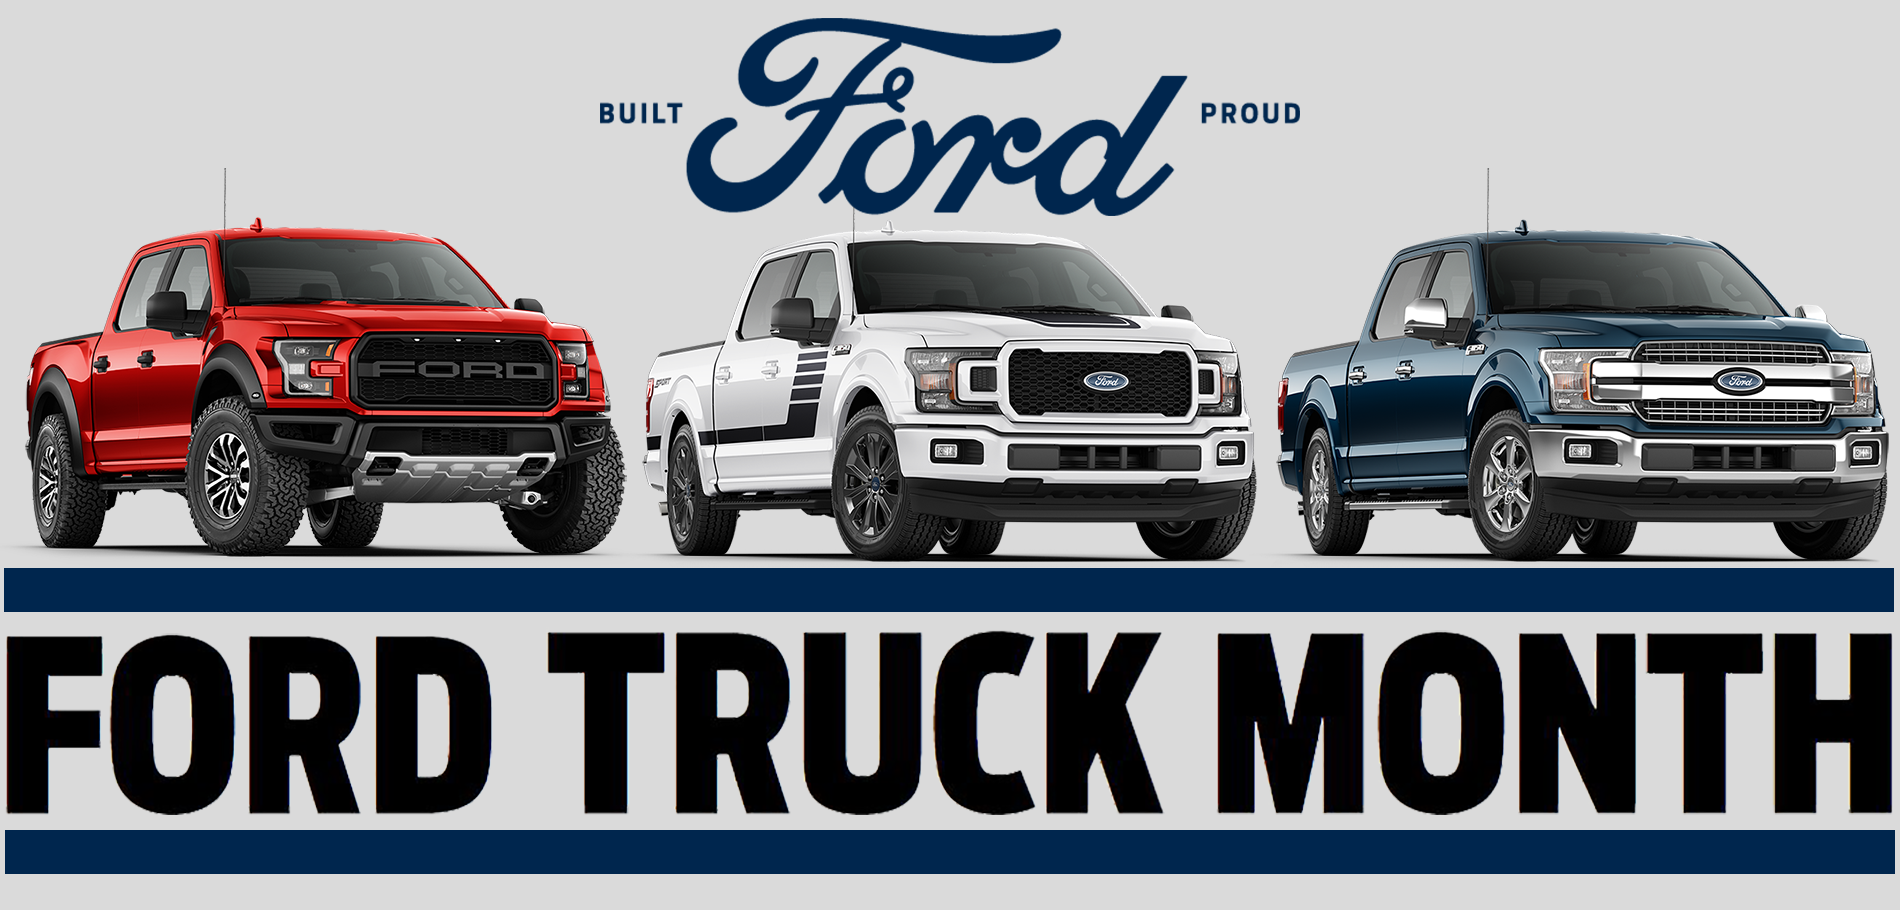 19 Ford Truck Month